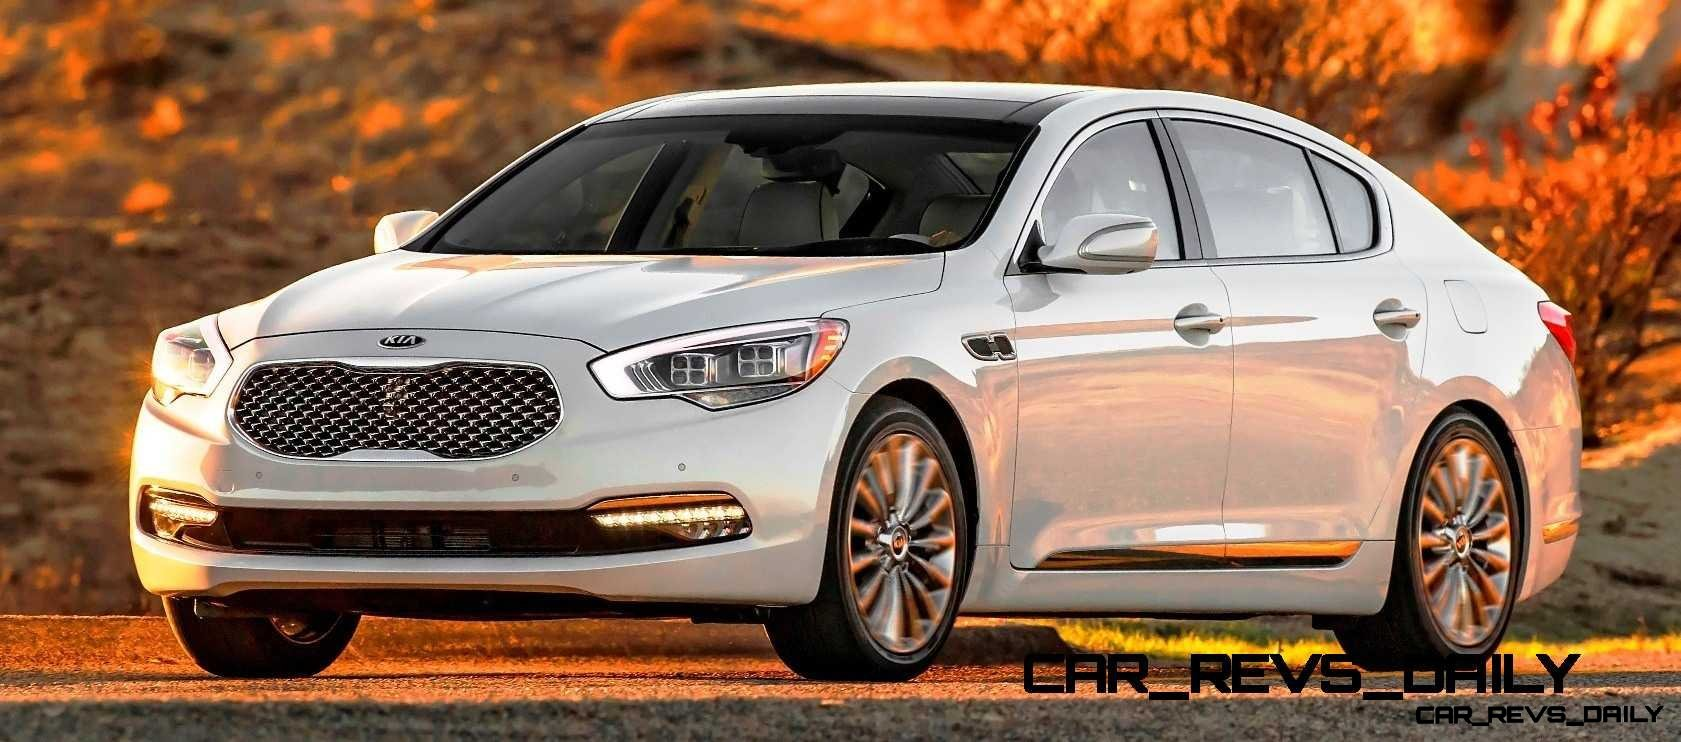 2015 K900 Kia New RWD Flagship 16